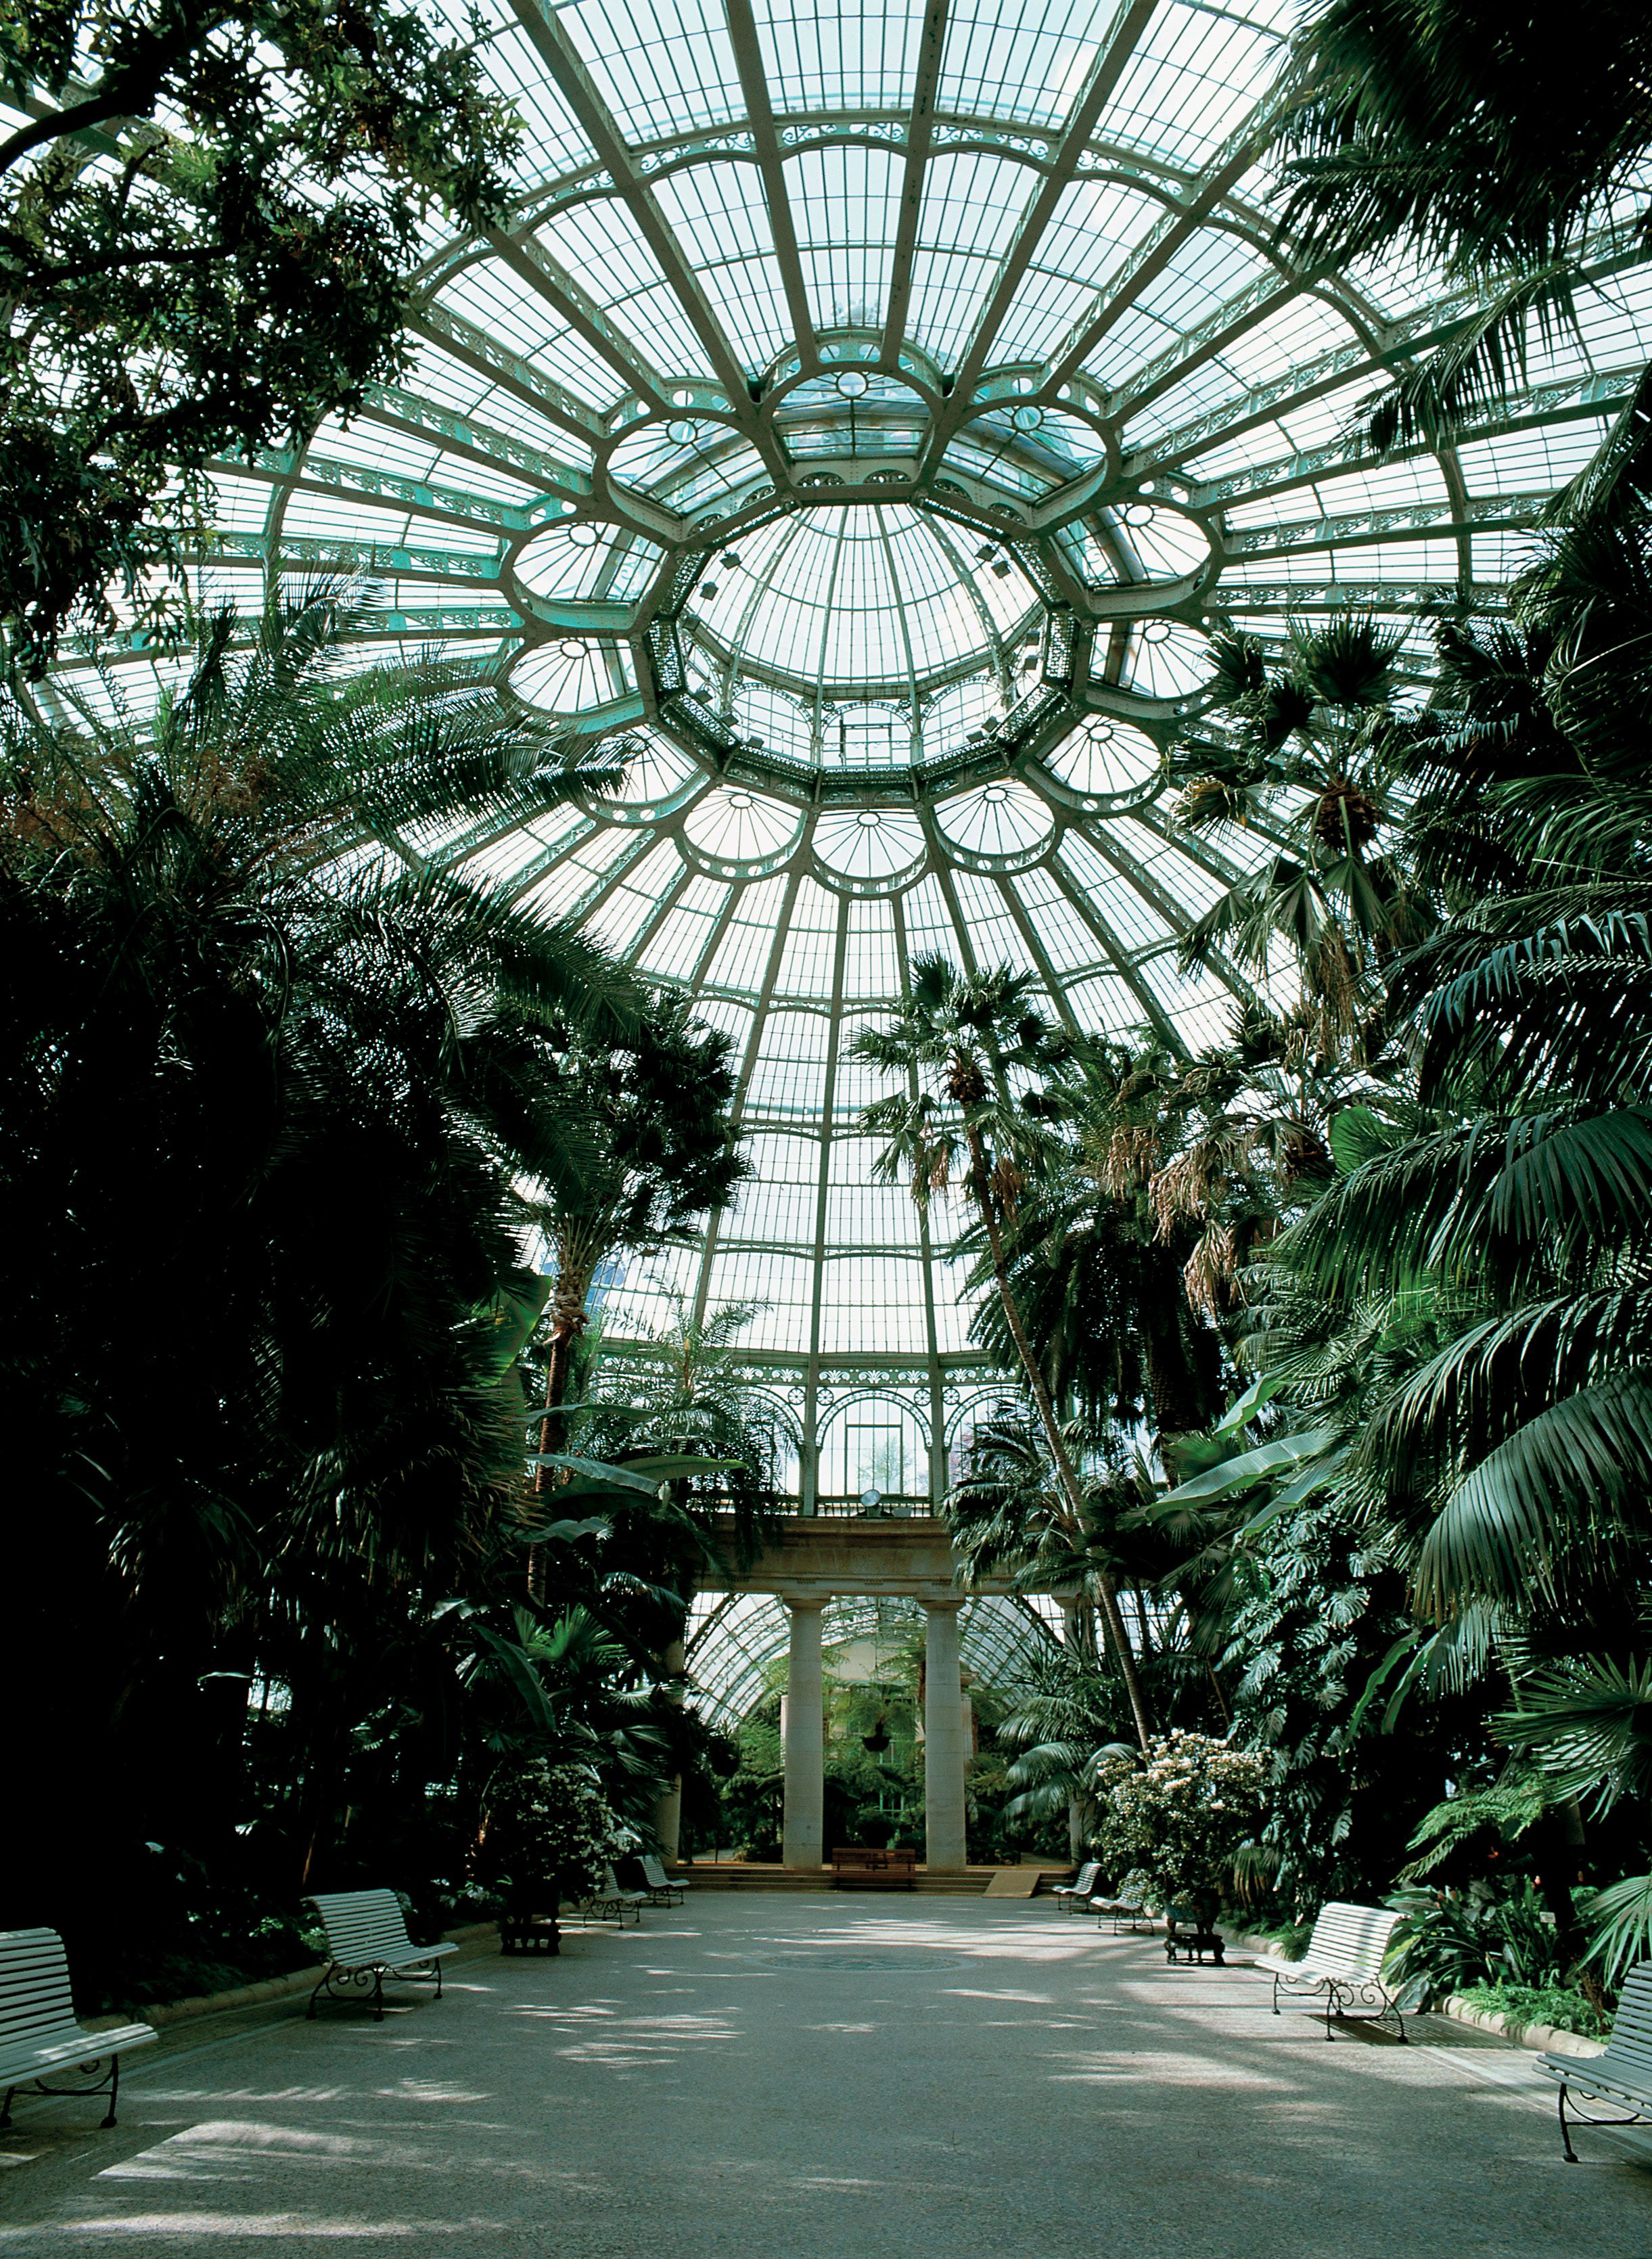 brussels dome royal greenhouse